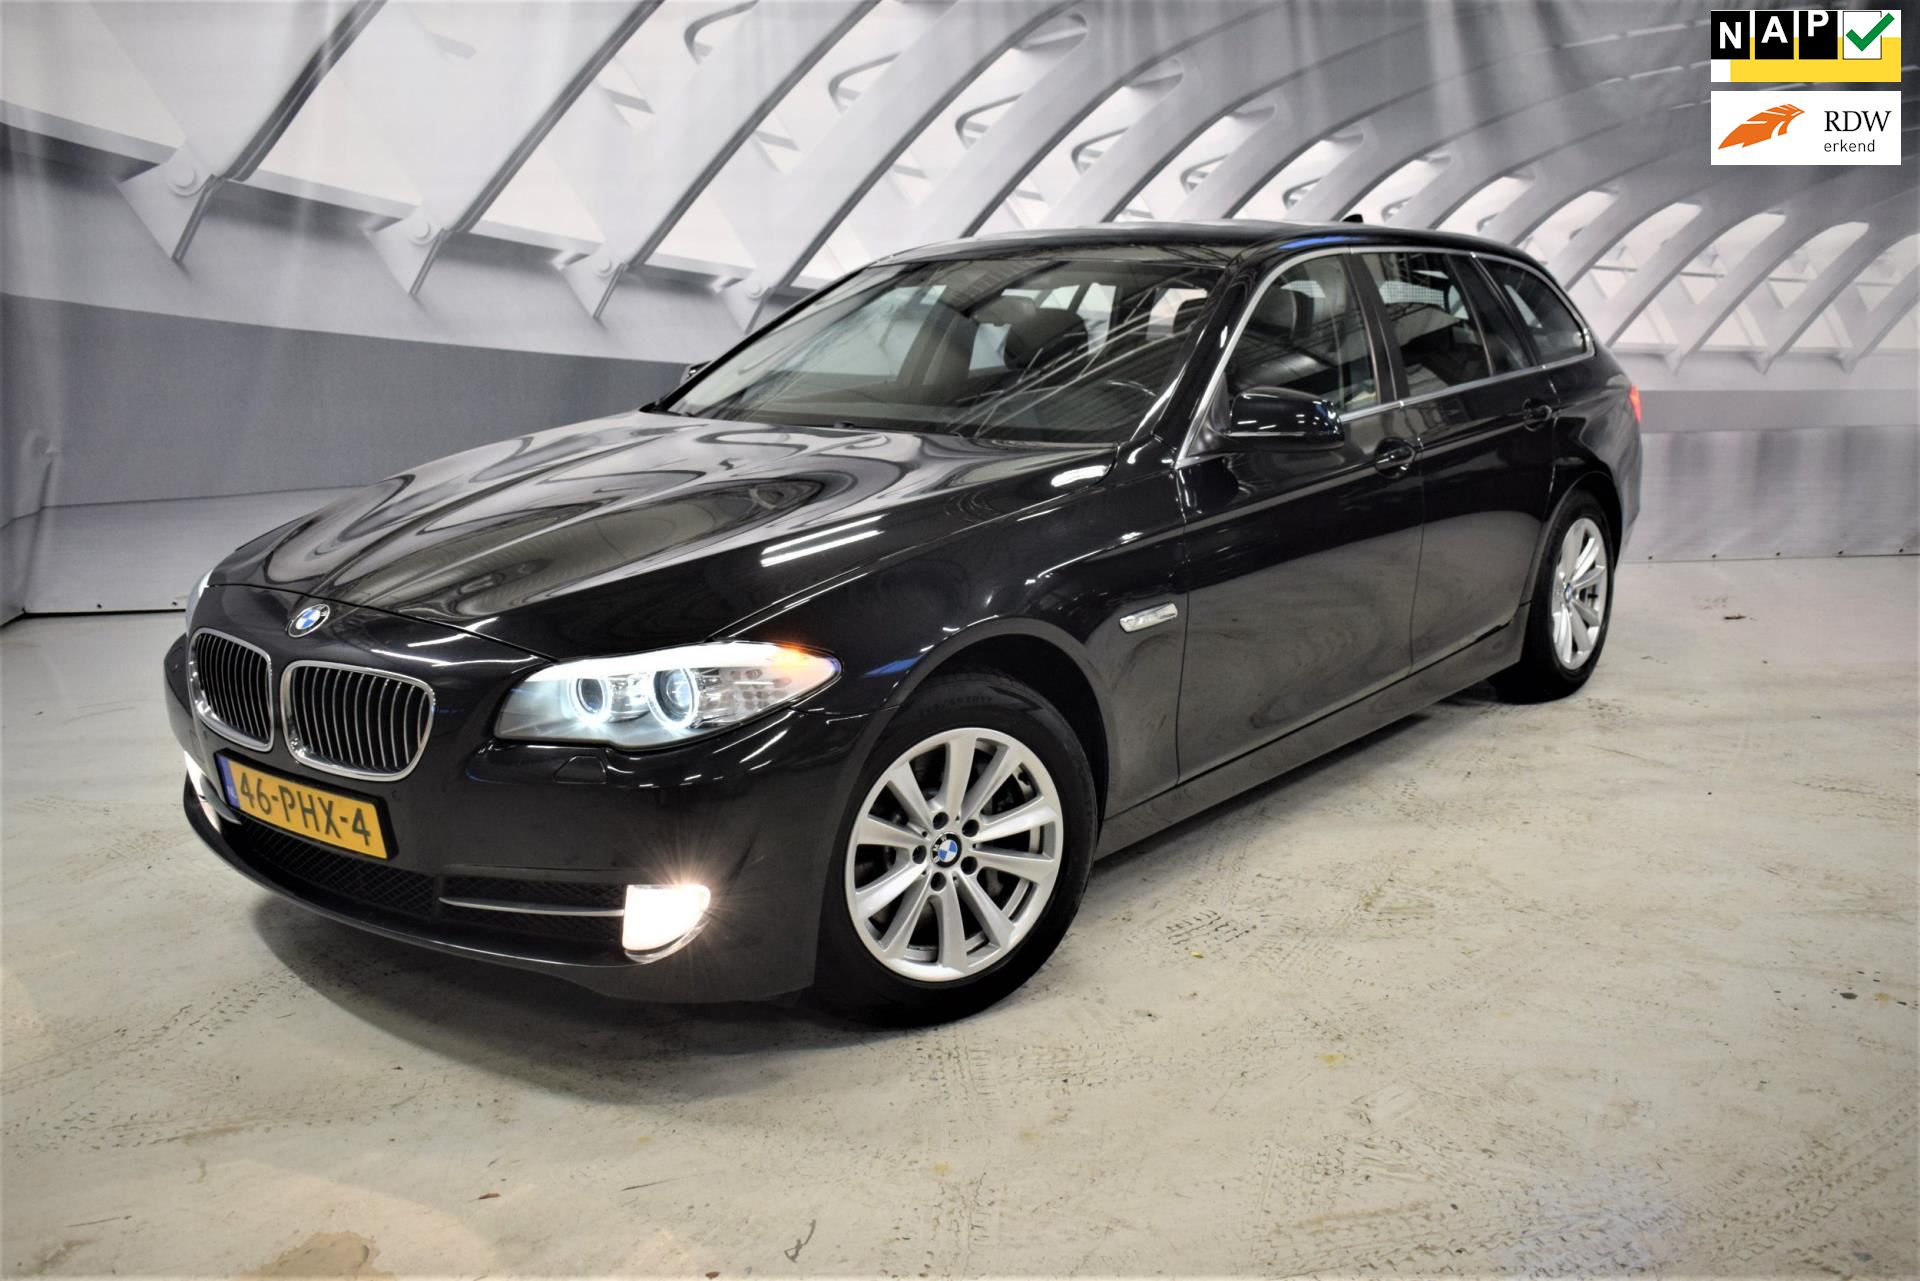 BMW 5-serie Touring occasion - Cars4u